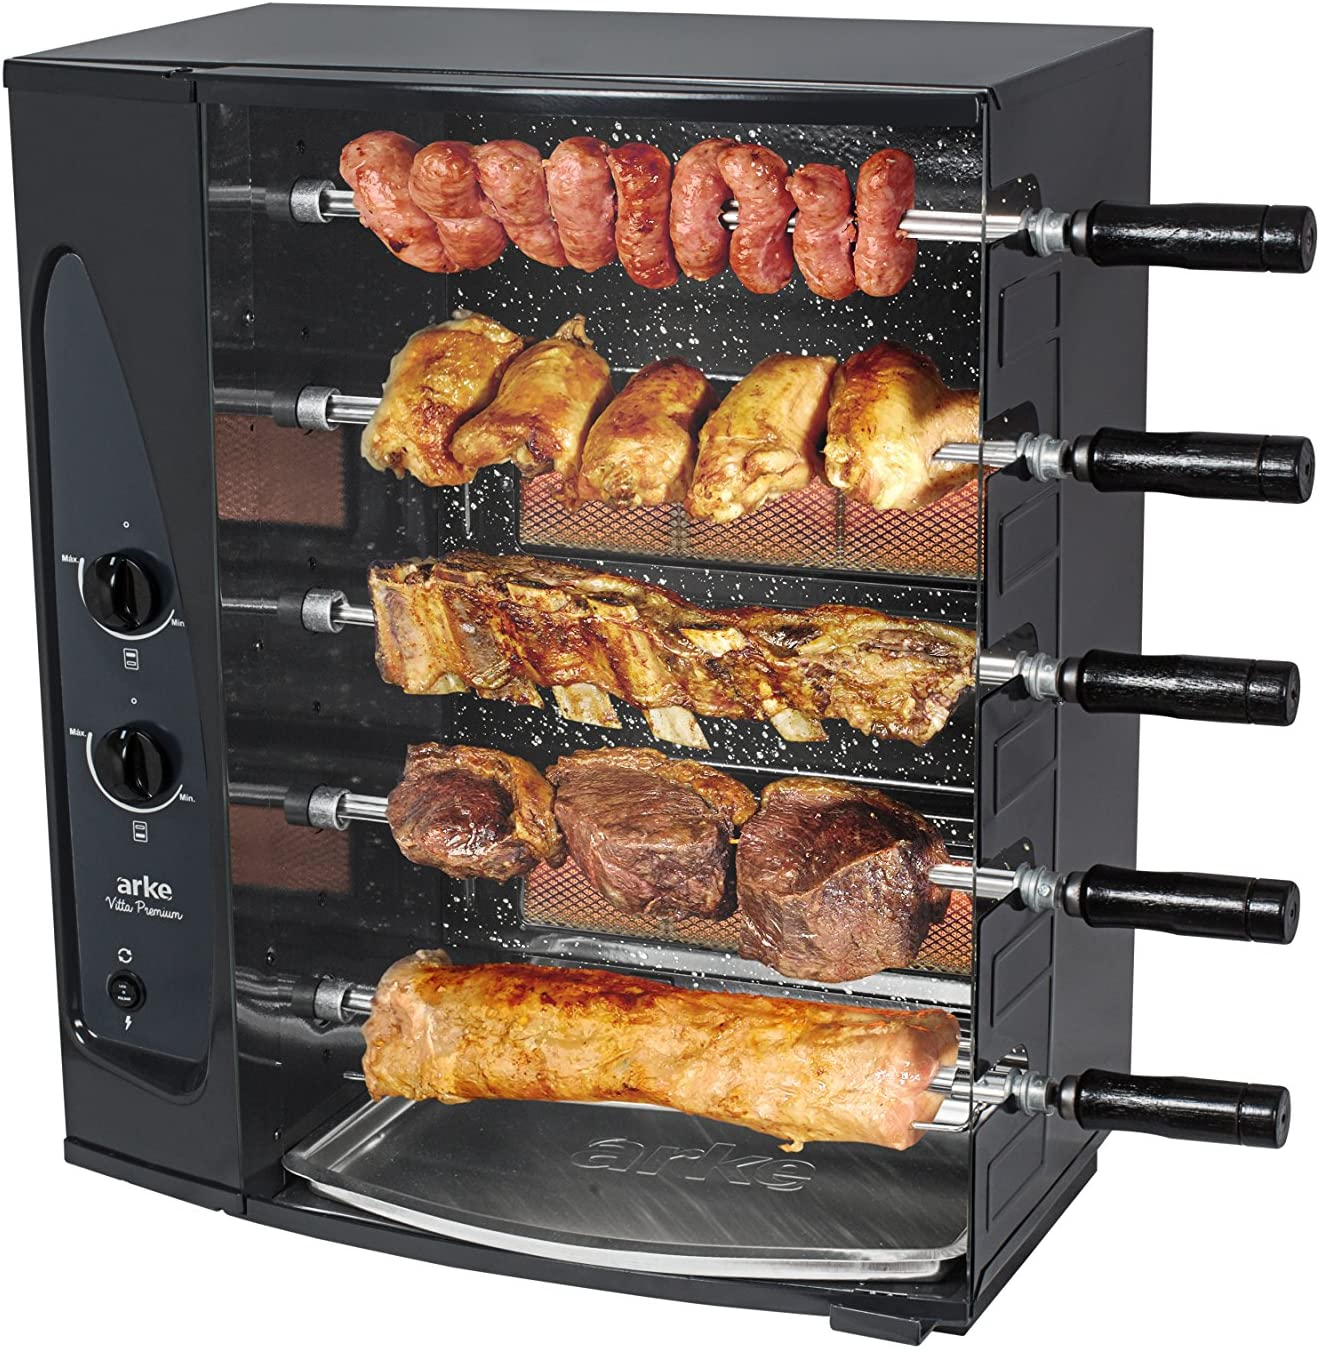 4 Skewers motor Authentic Brazilian Skewer Rotisserie Charcoal BBQ Grill